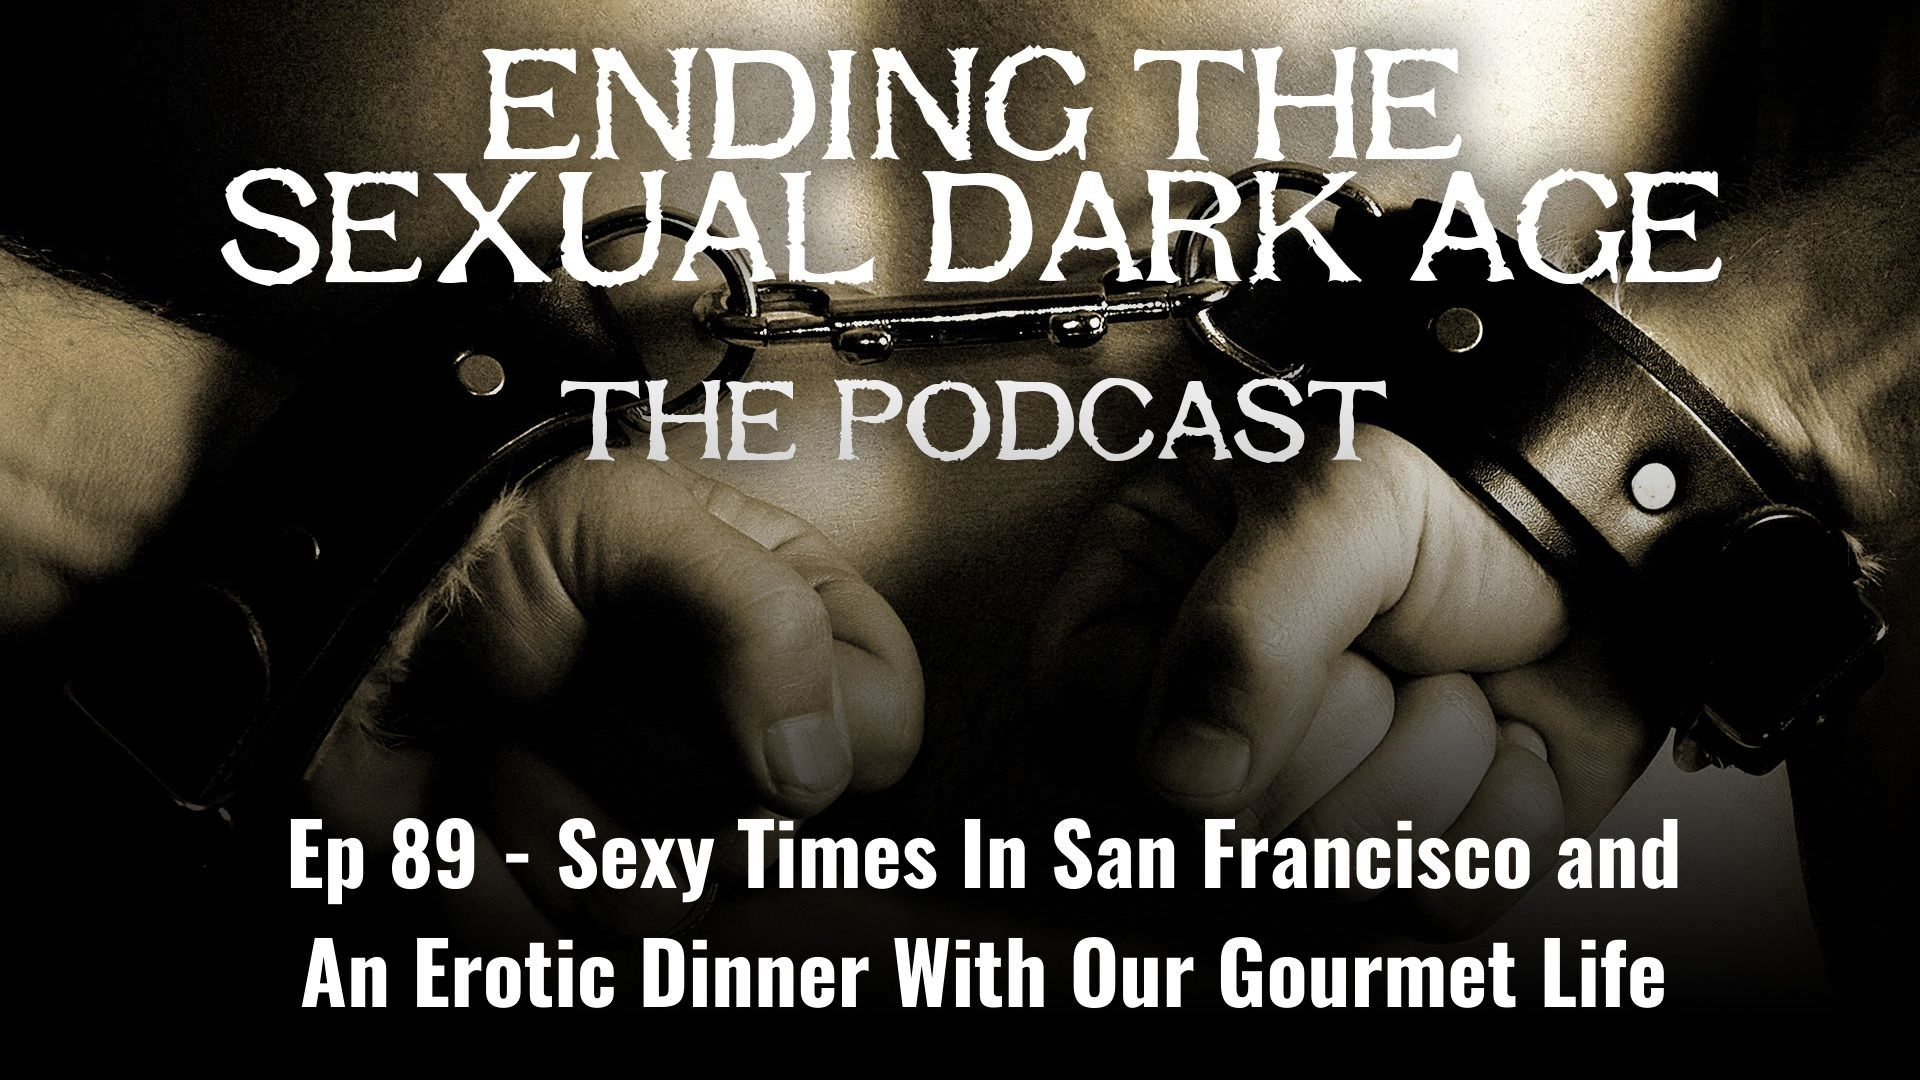 Episode 89 | Sexy Times In San Francisco and An Erotic Dinner With Our Gourmet Life